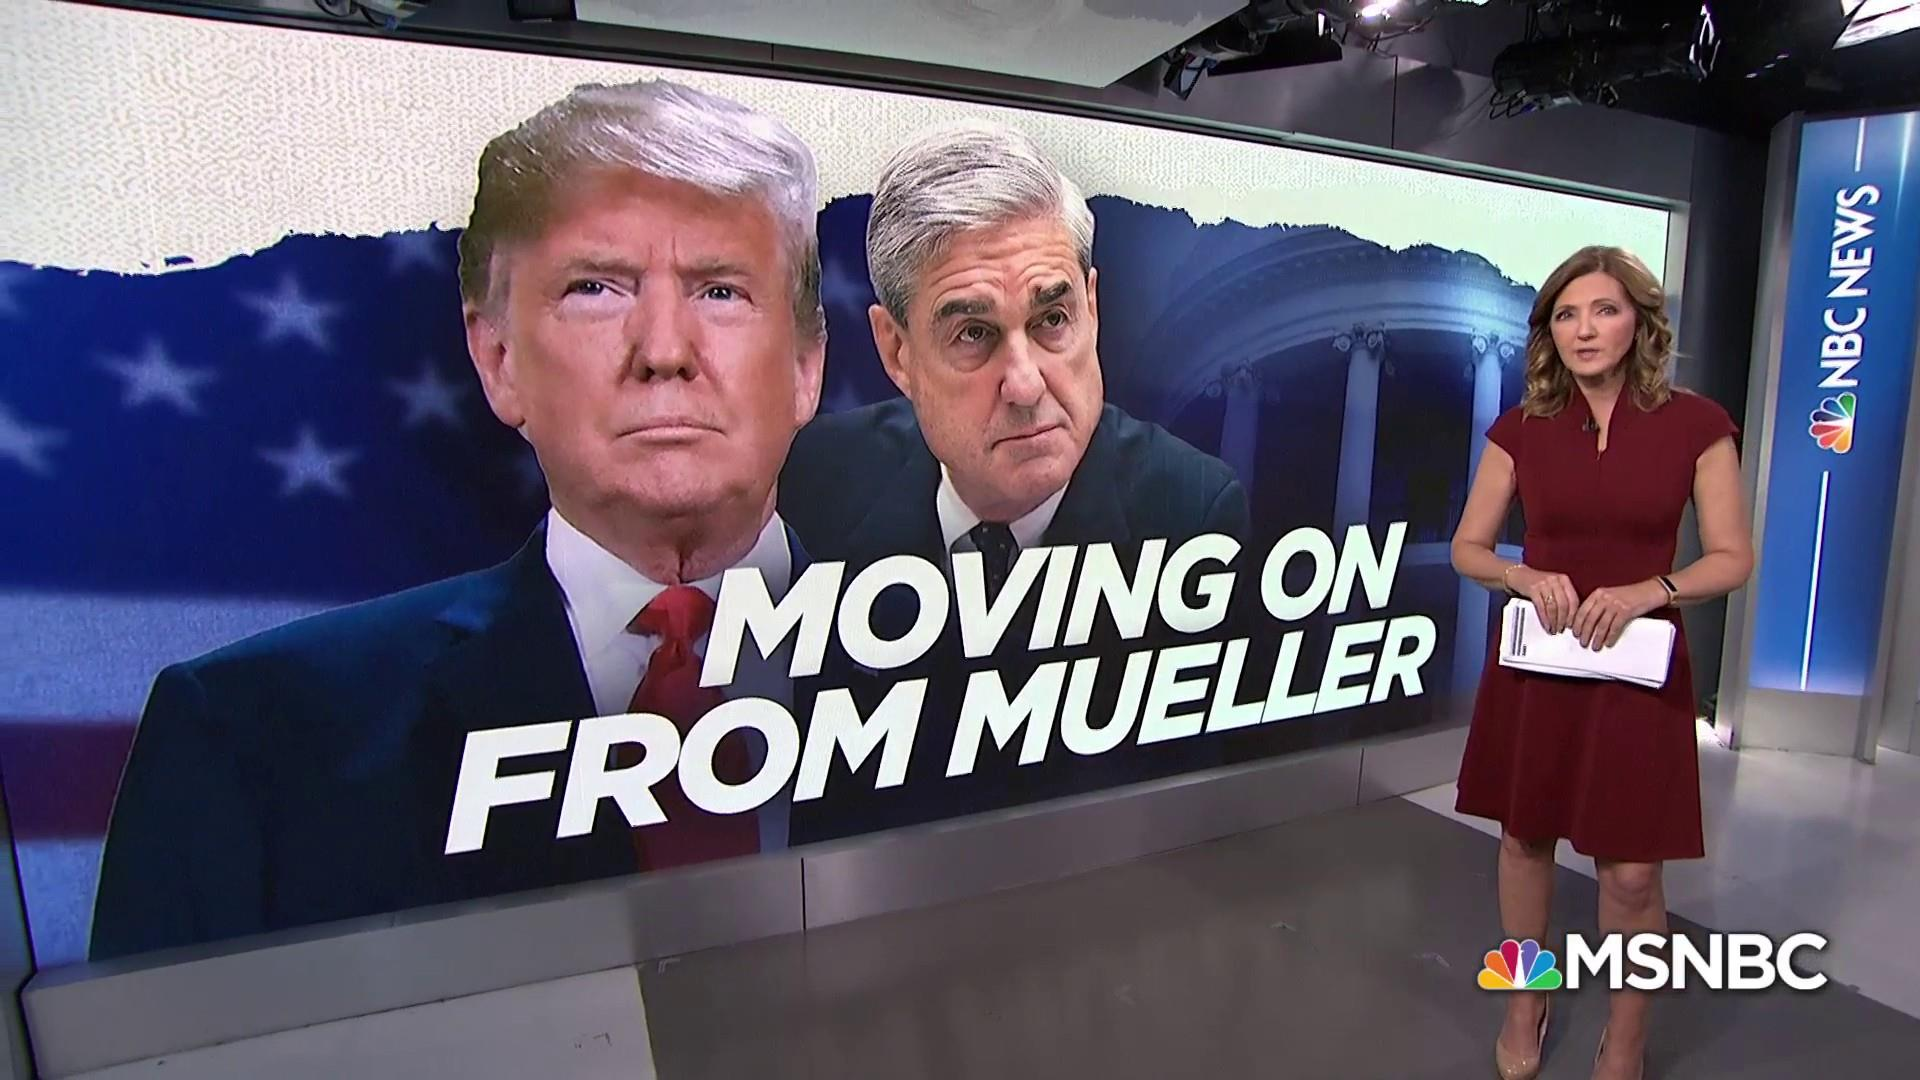 How President Trump is moving on from Mueller